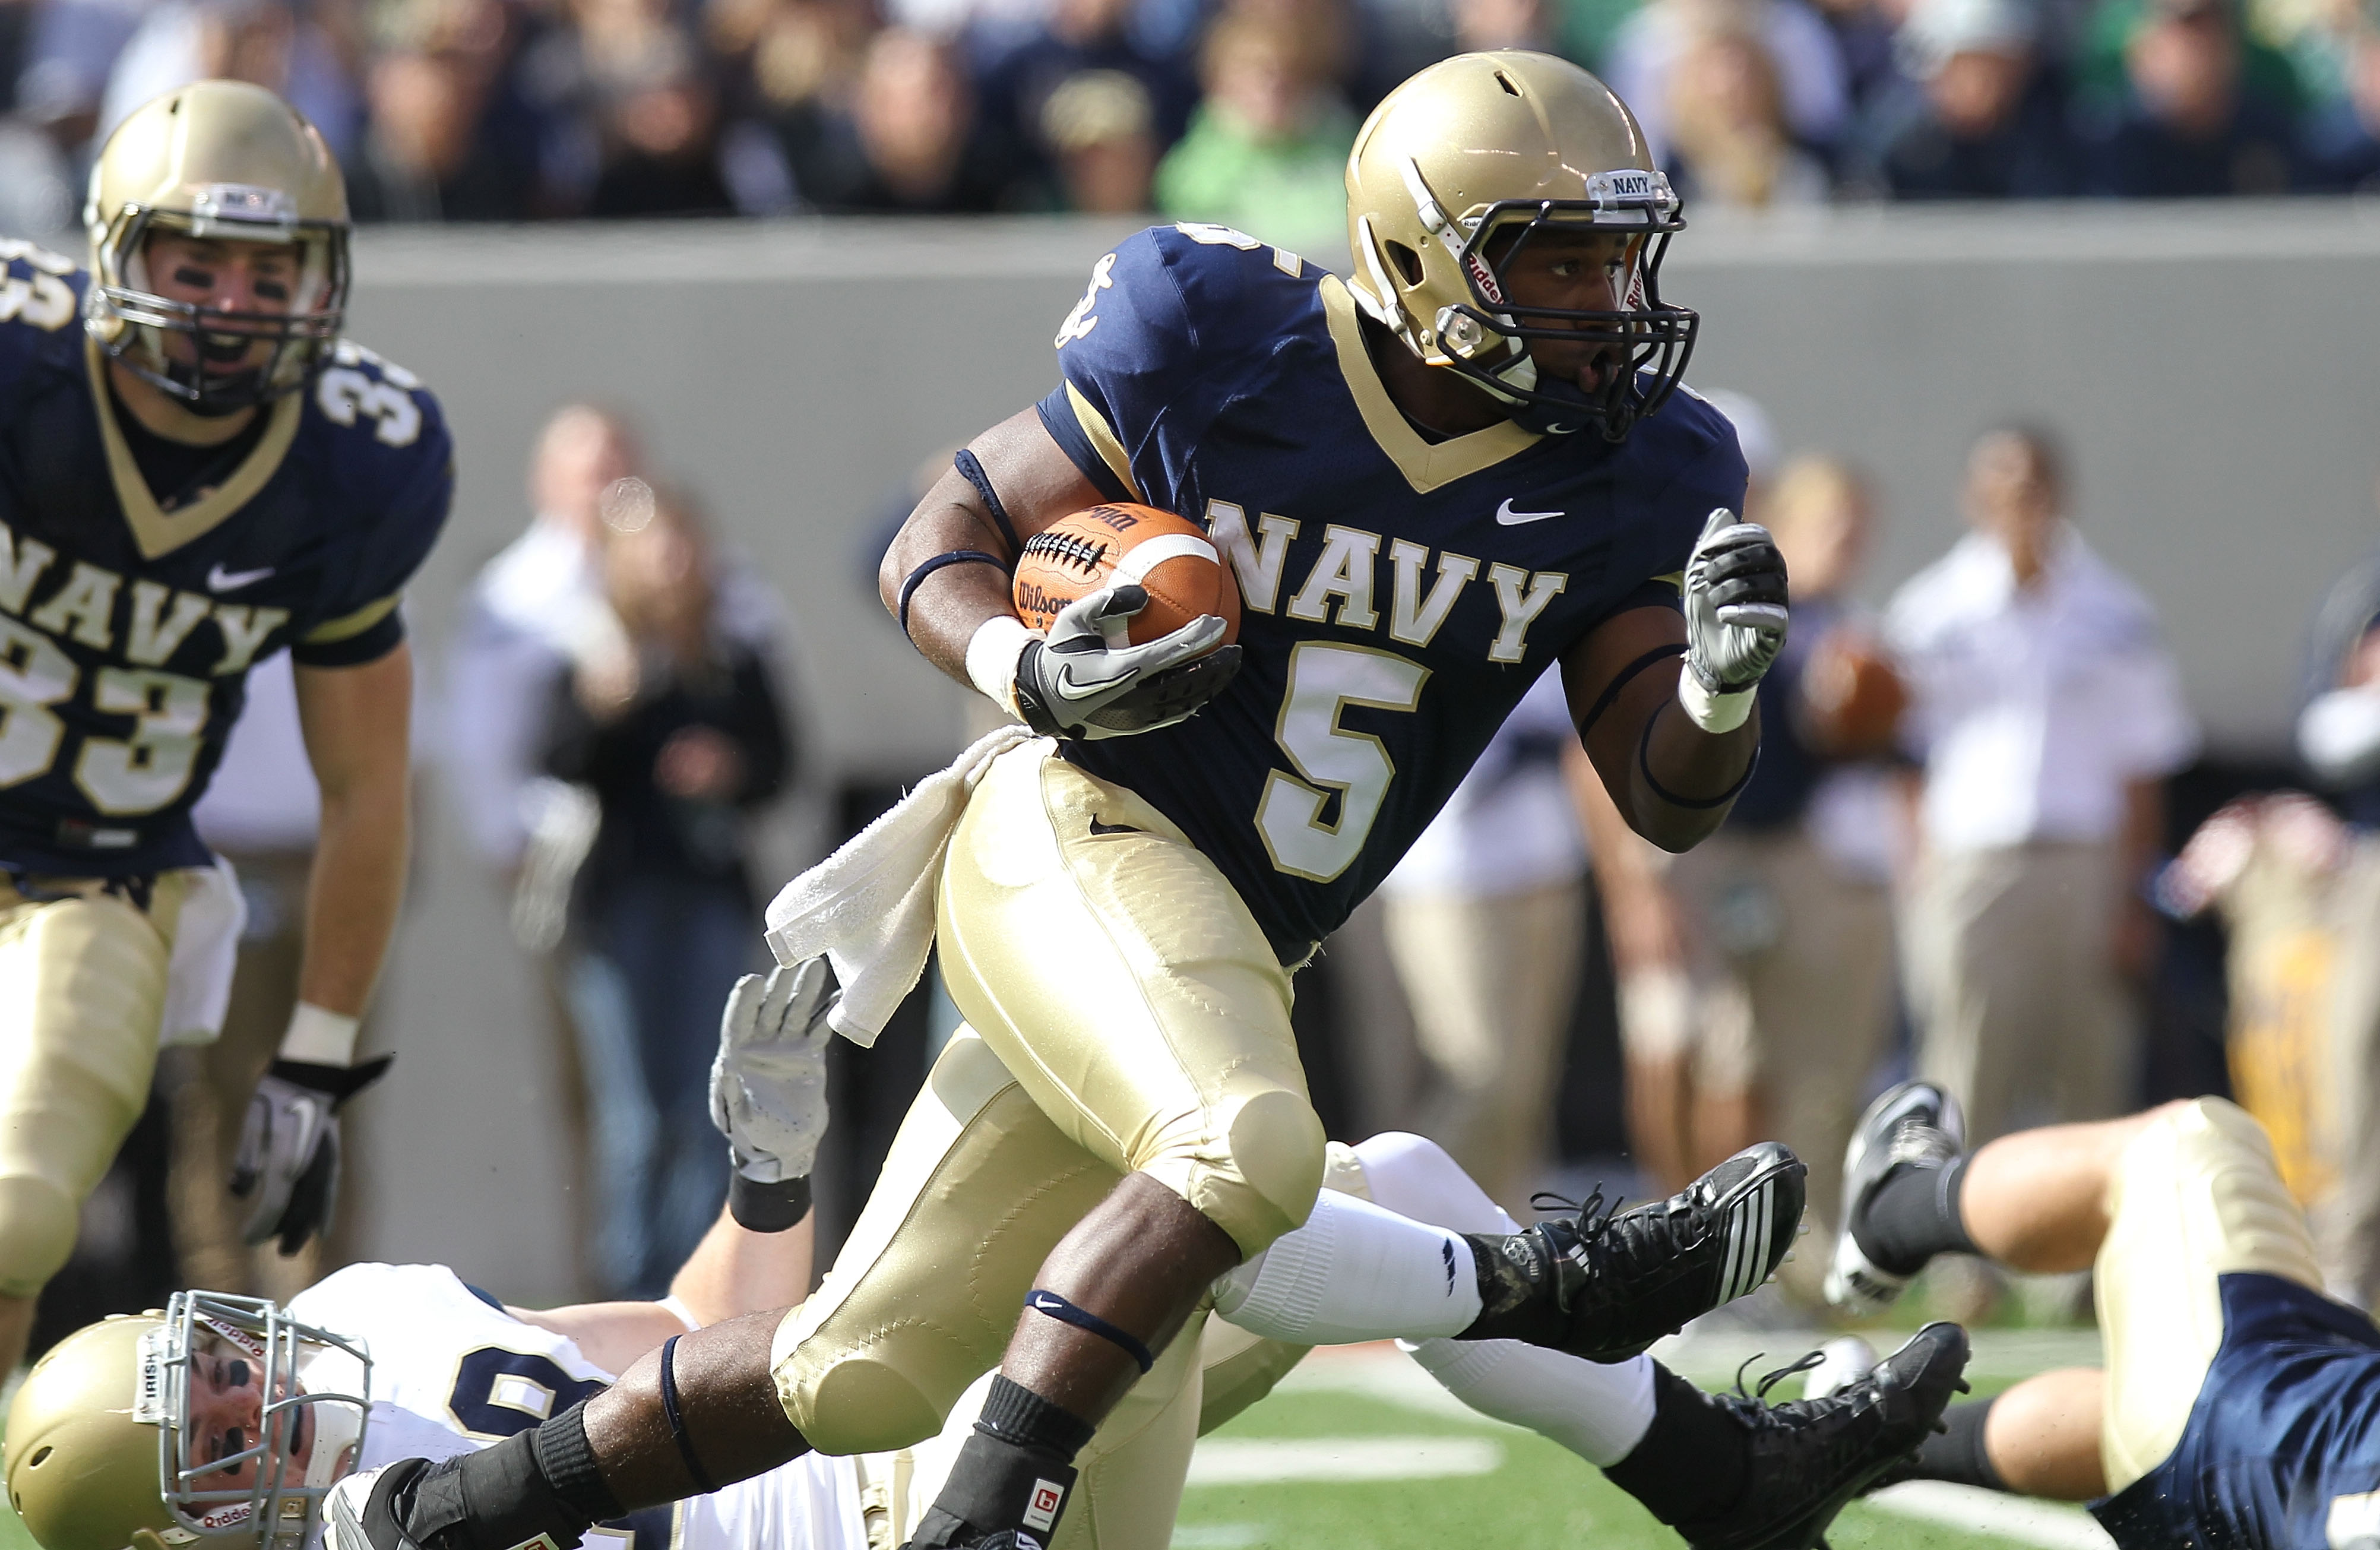 EAST RUTHERFORD, NJ - OCTOBER 23:  Patrick Mealy #5 of the Navy Midshipmen rushes against the Notre Dame Fighting Irish at New Meadowlands Stadium on October 23, 2010 in East Rutherford, New Jersey.  (Photo by Nick Laham/Getty Images)